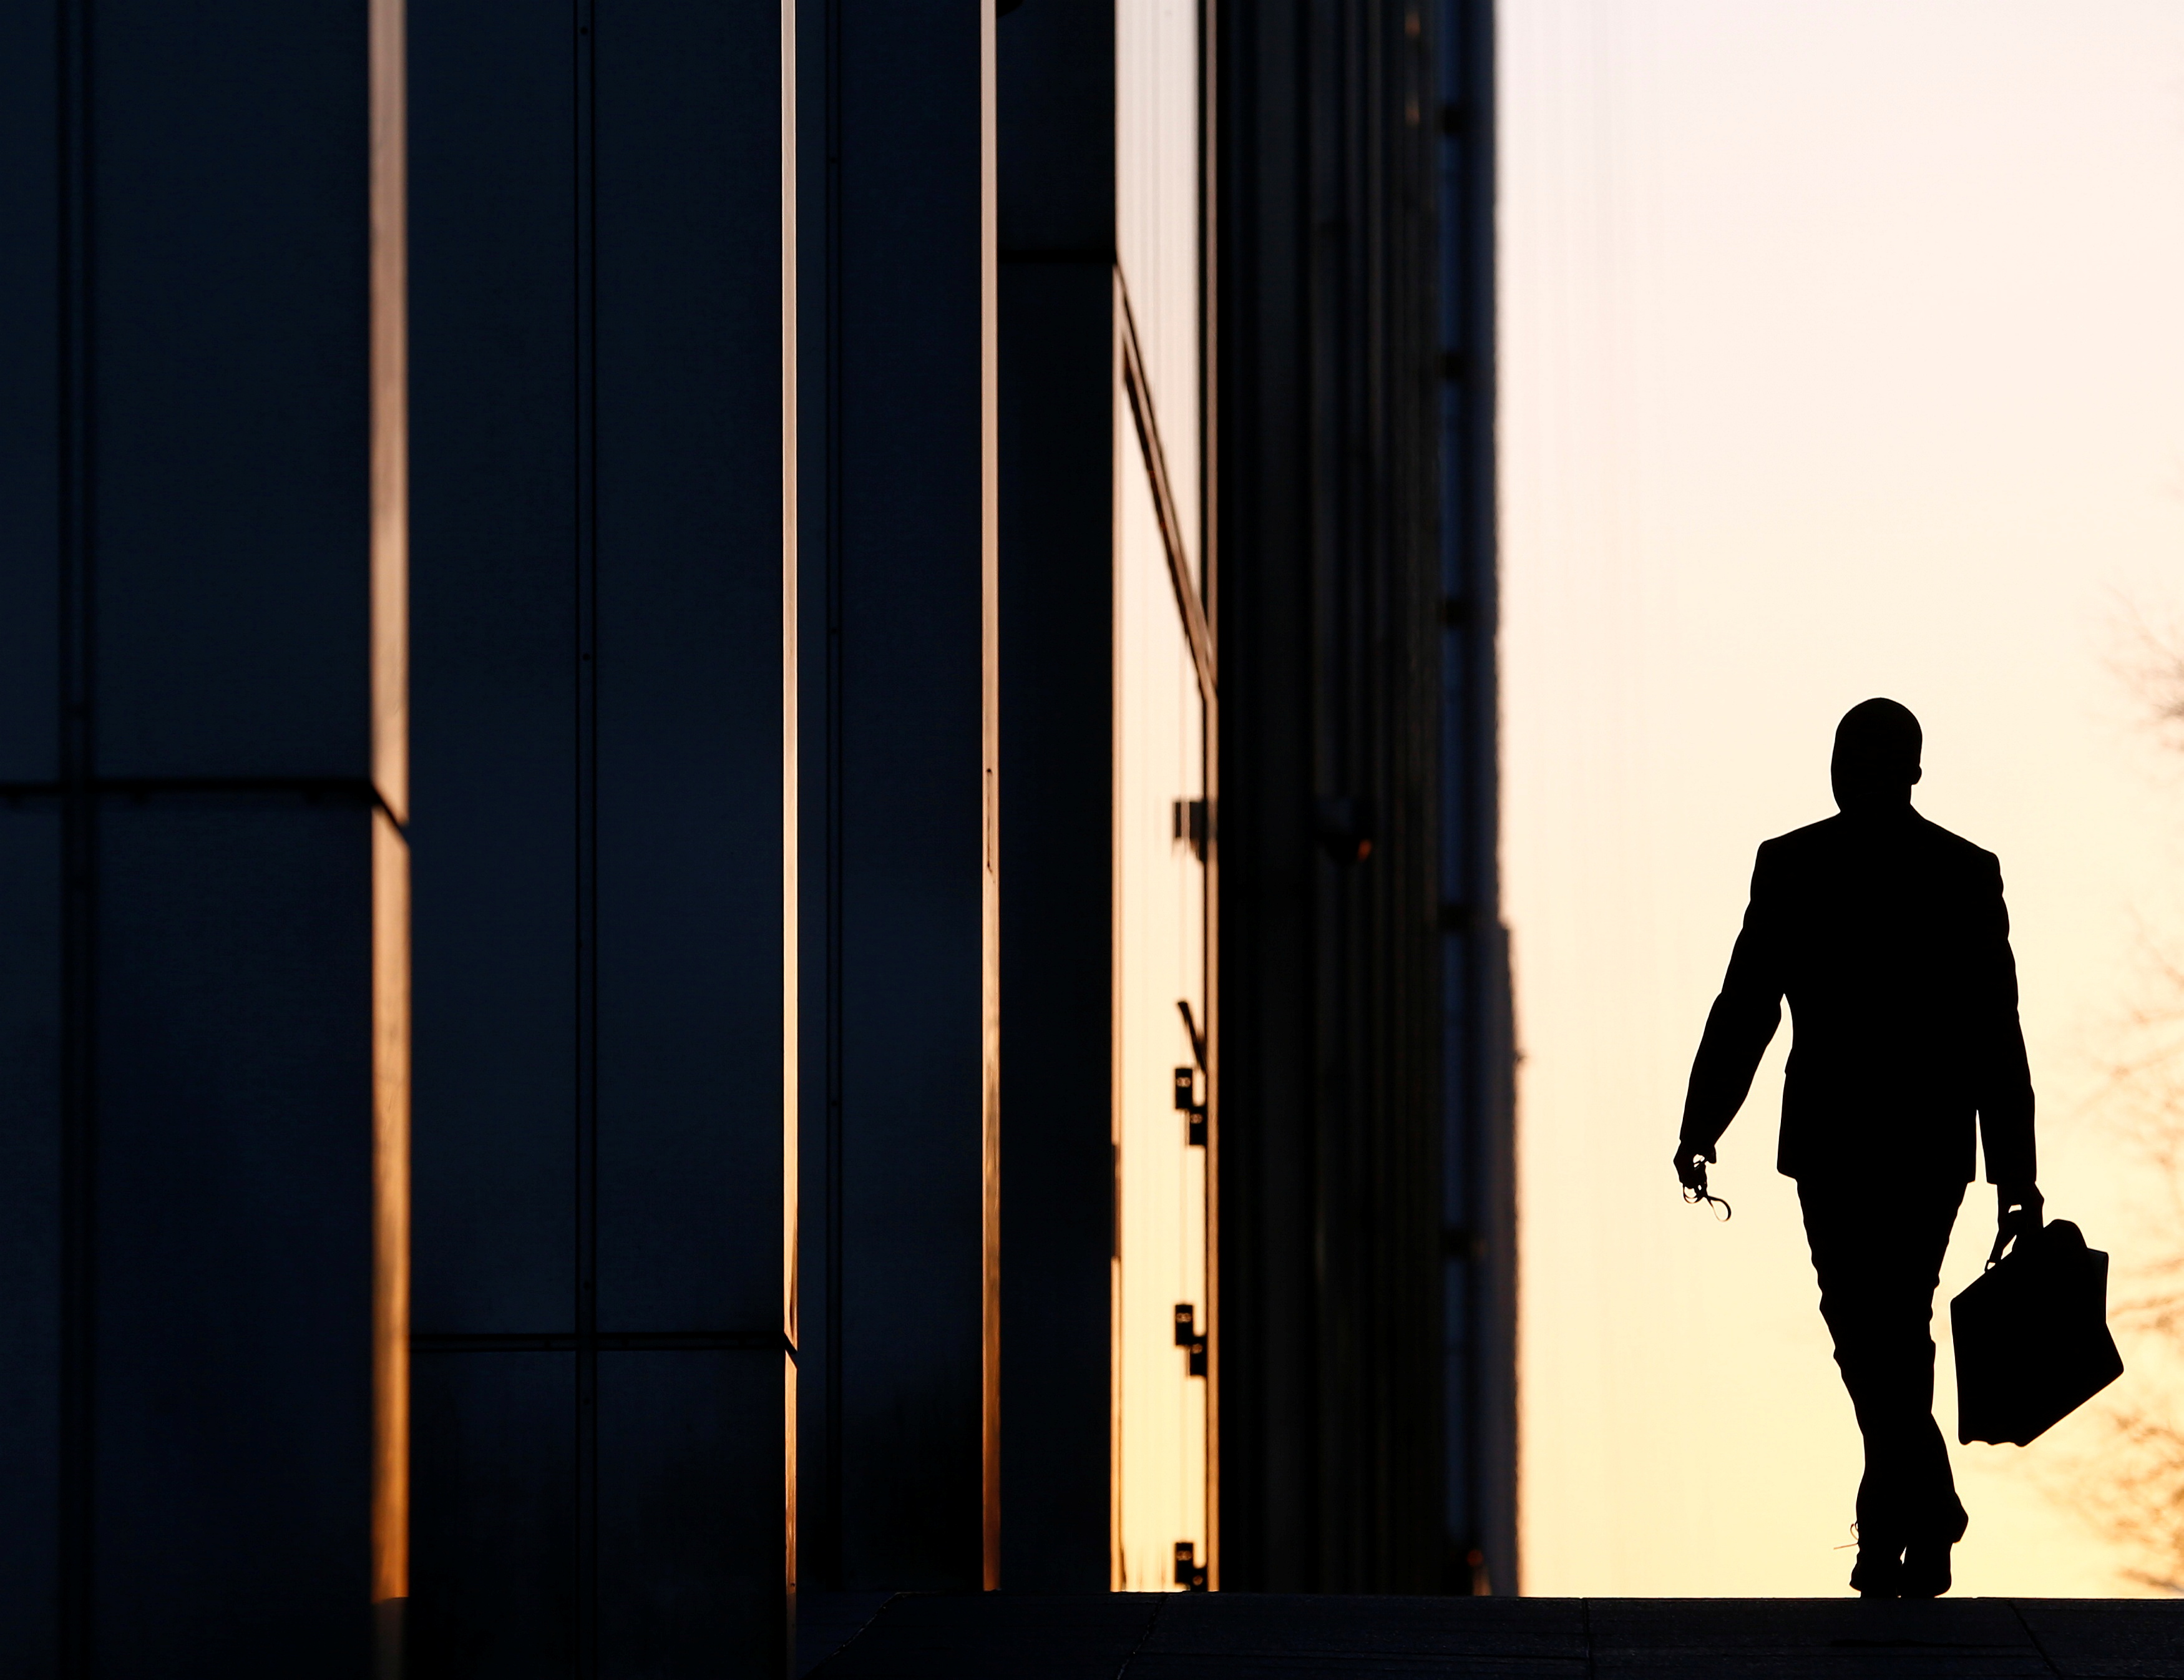 A worker arrives at his office in the Canary Wharf business district in London February 26, 2014./File Photo